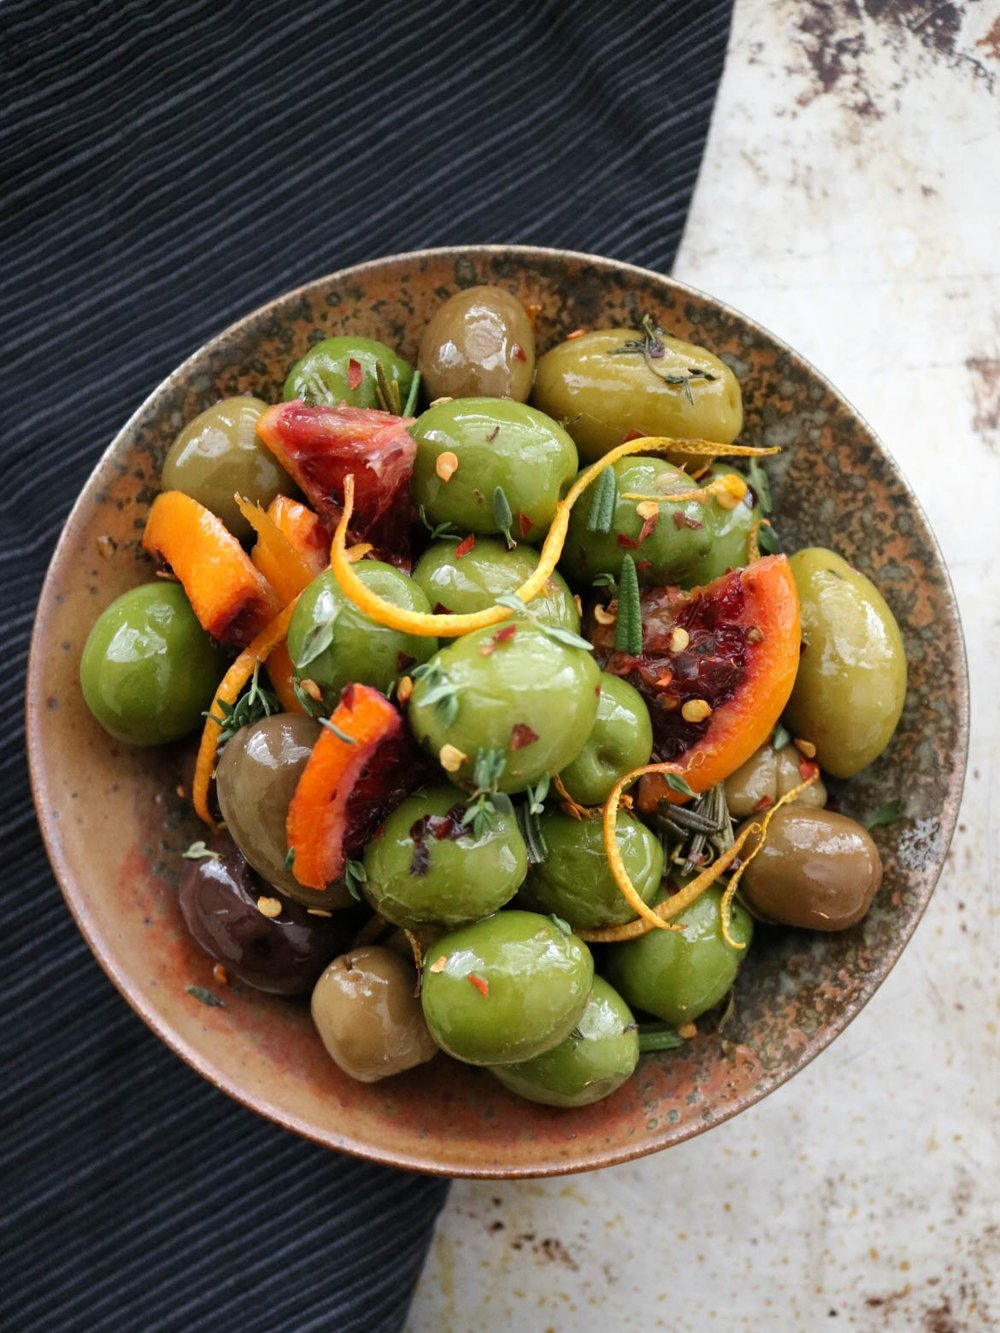 Citrus baked olives, featured in 65+ nutrient dense real food snack recipes.